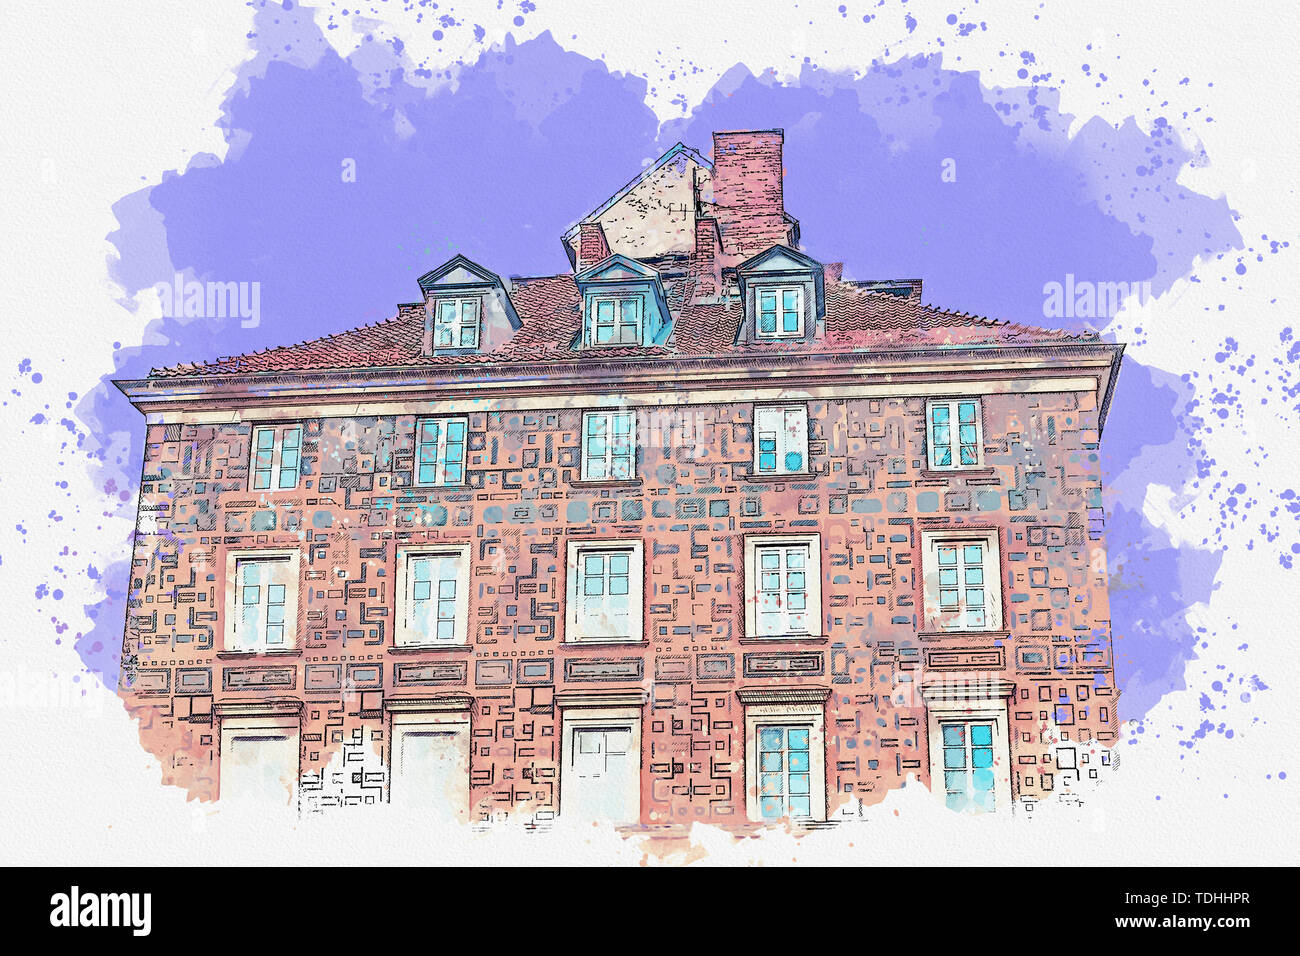 Watercolor sketch or illustration of a beautiful view of a European old apartment building. - Stock Image